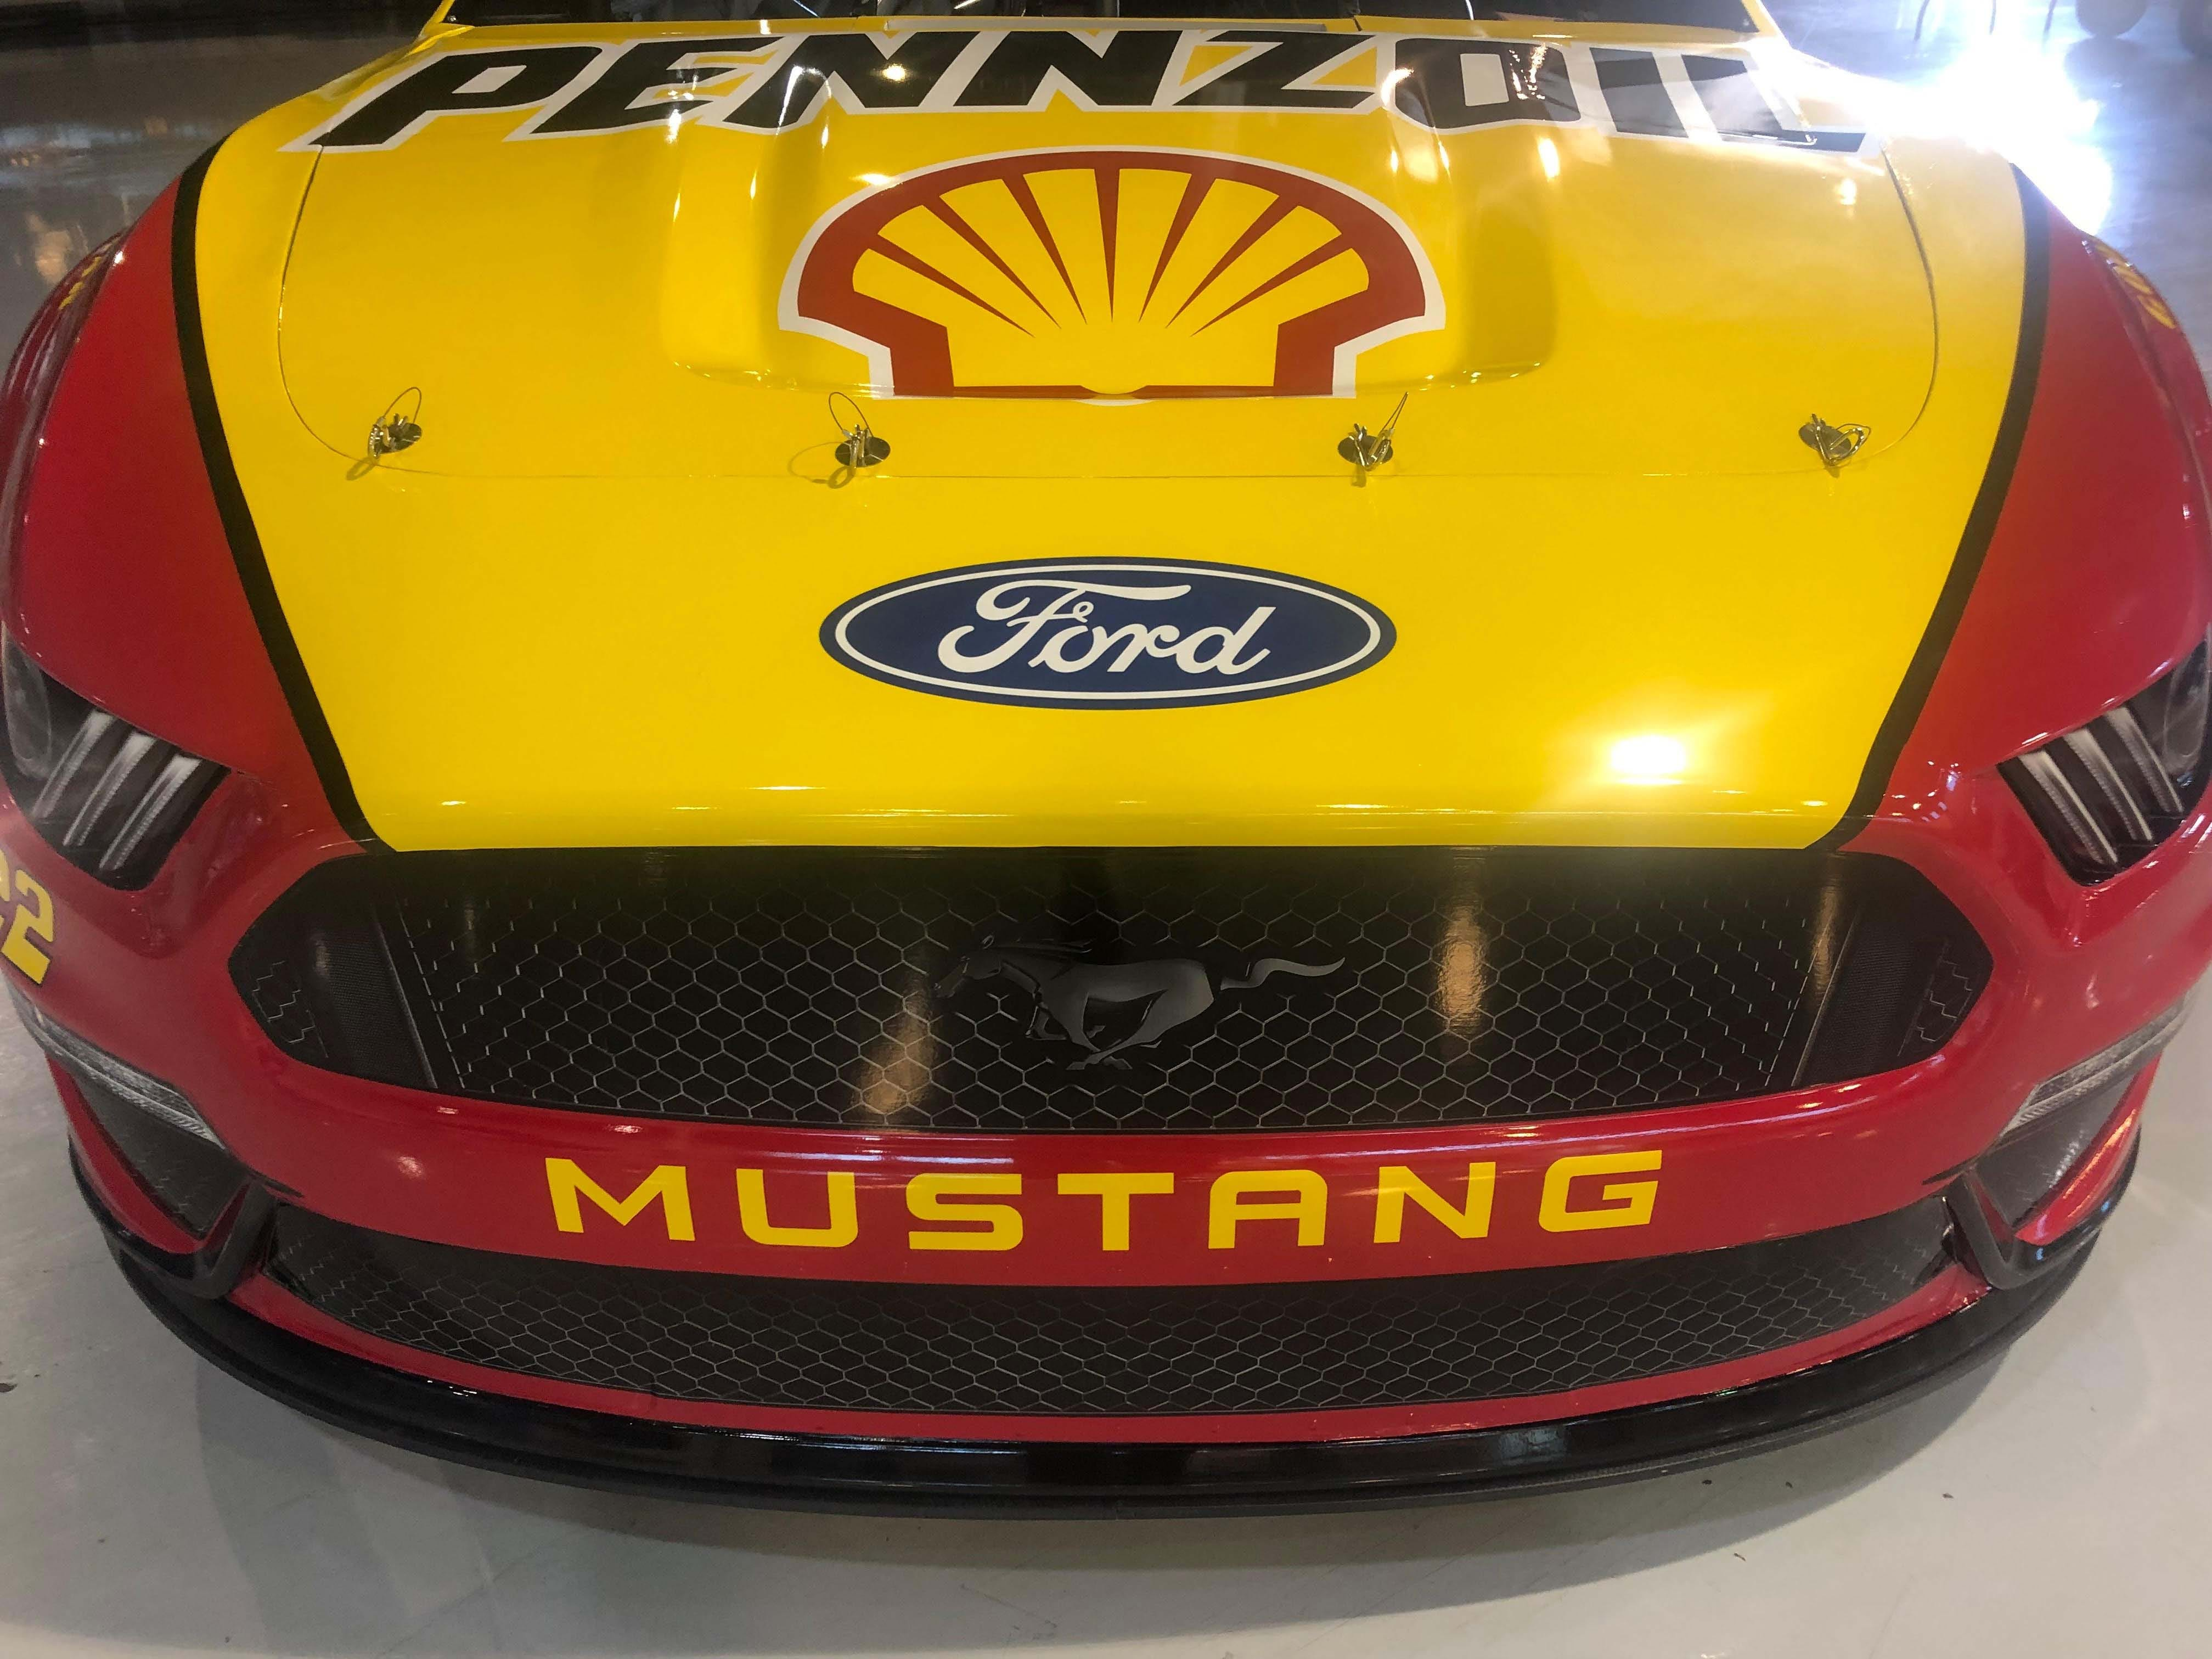 The pony rides in NASCAR. The Ford NACAR wears the Mustang's signature pony. The #22 car belongs to Team Penske's Joey Logano.